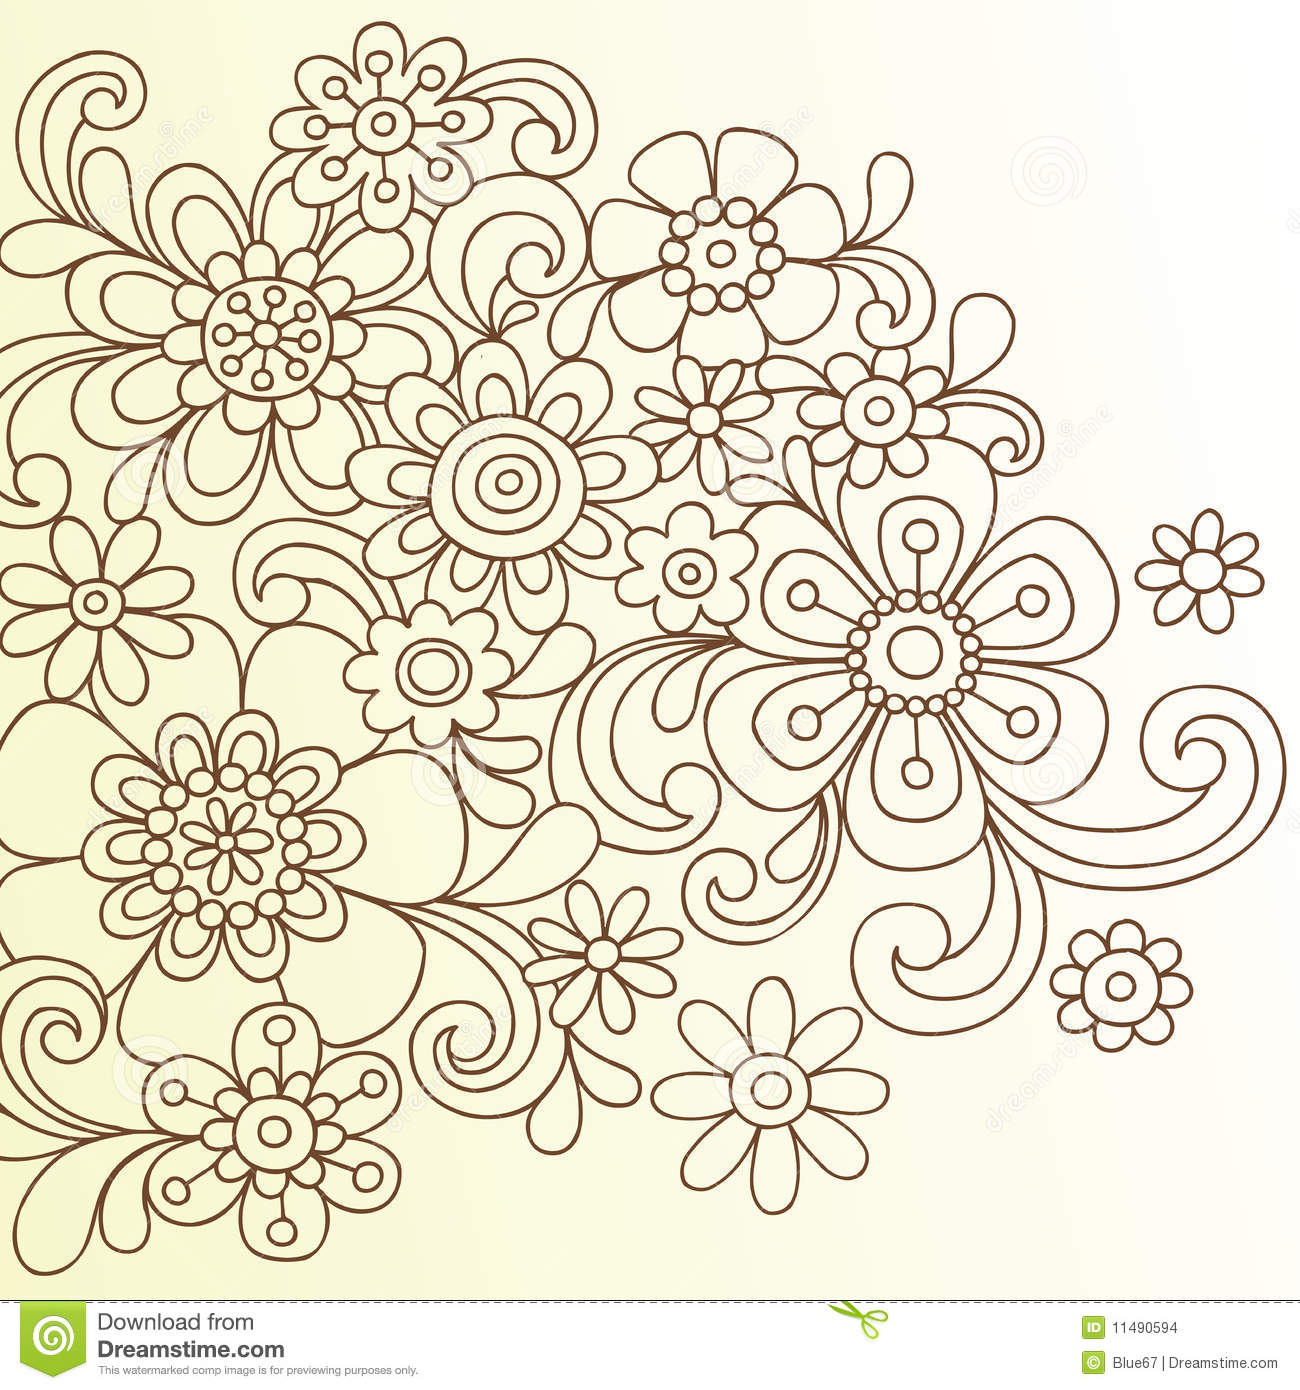 Hand Drawn Henna Doodle Flowers Vector Illustration